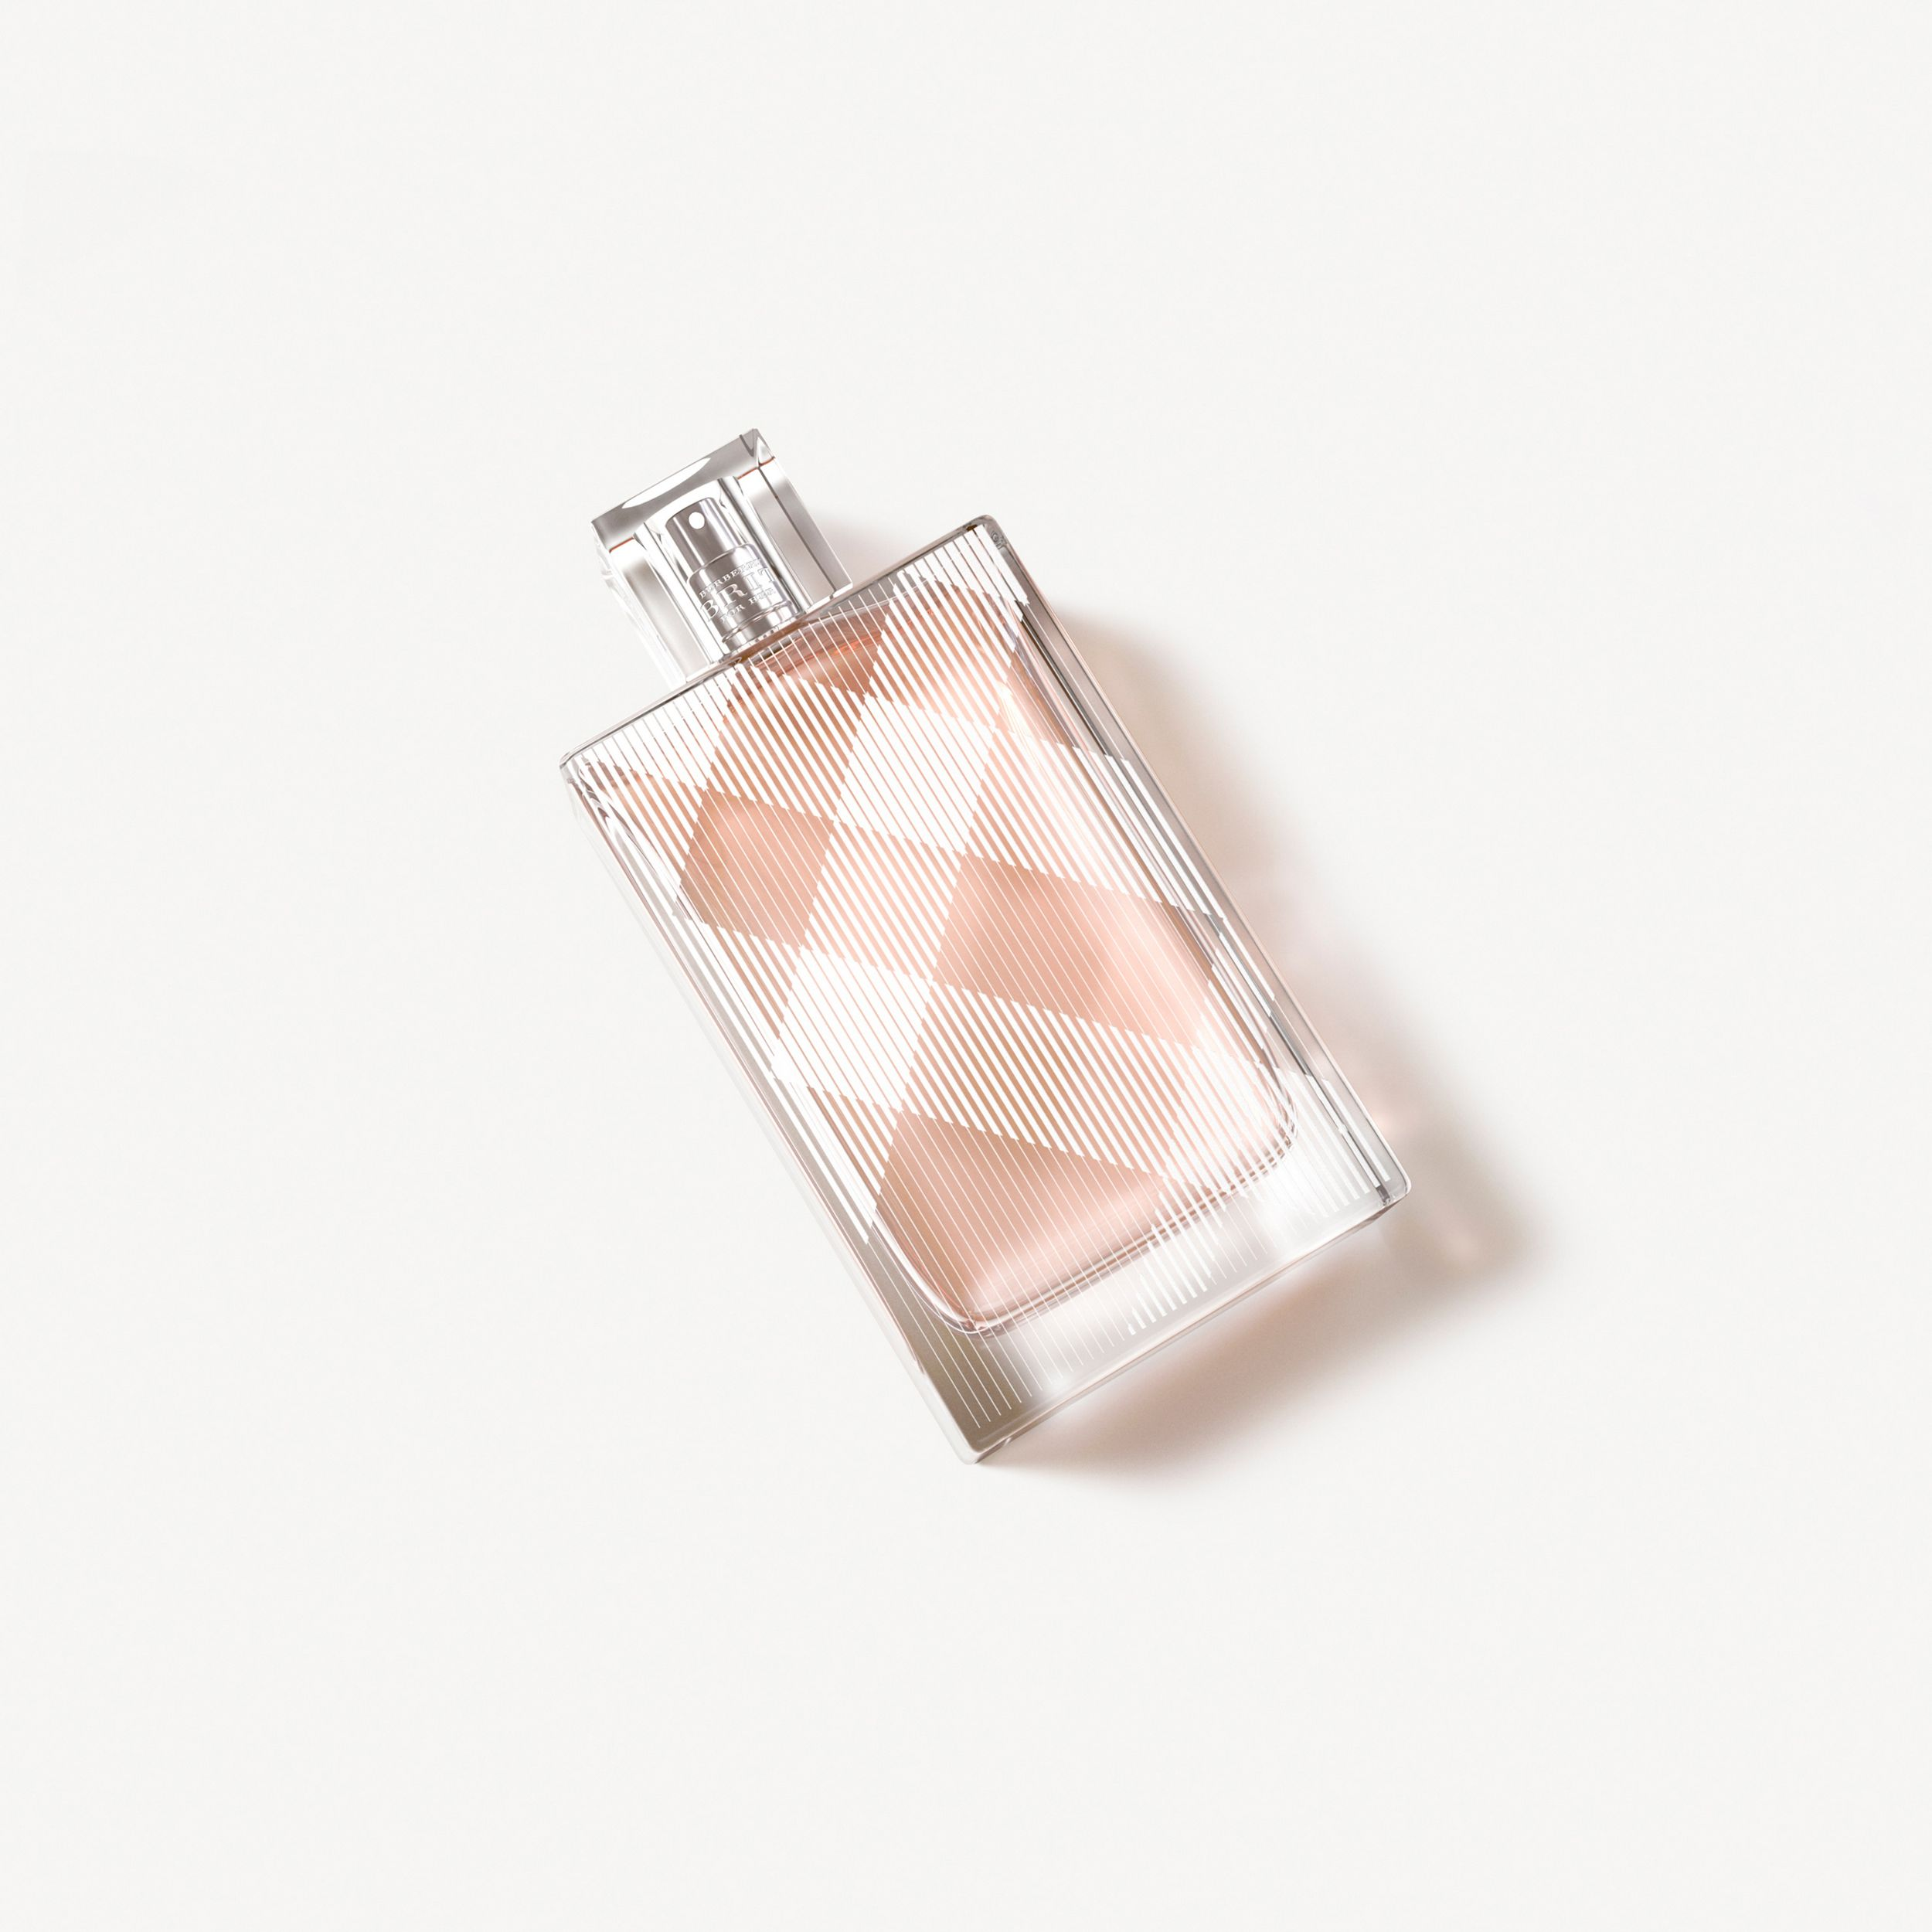 Eau de Toilette Burberry Brit For Her 100 ml - Femme | Burberry Canada - 1